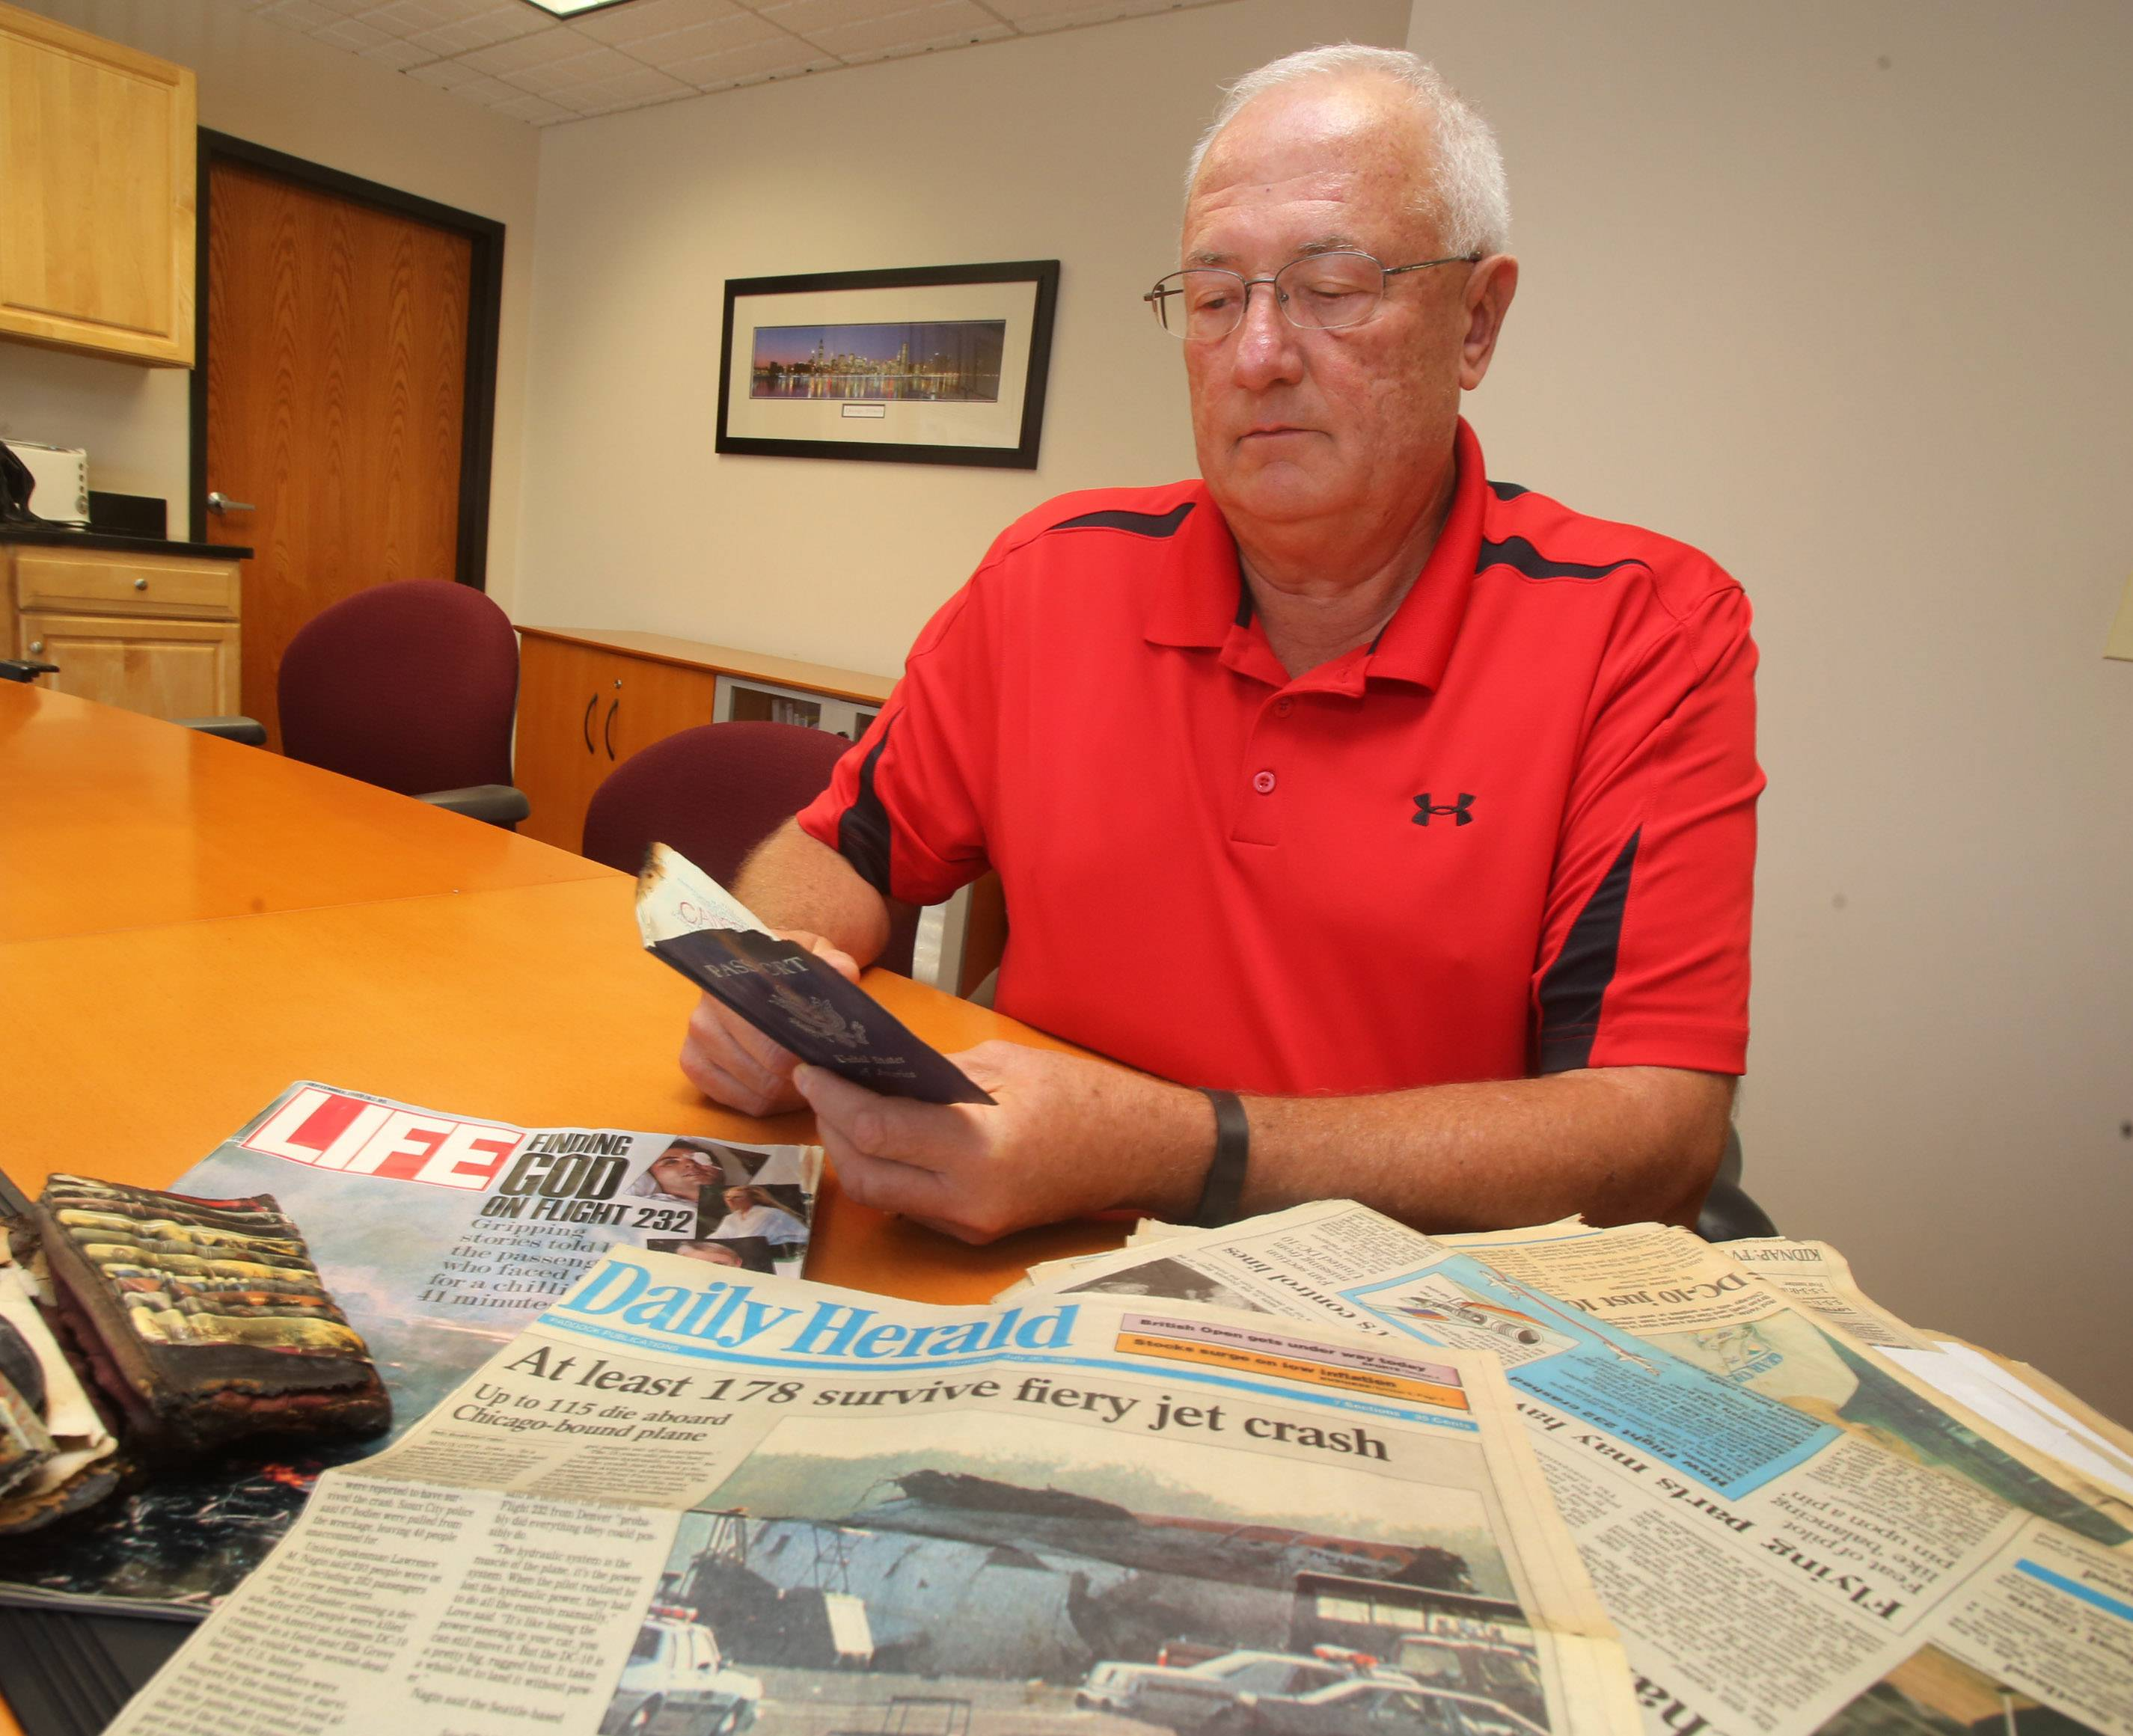 Libertyville resident Rod Vetter looks at hiis passport as he describes his experience surviving the crash of United Airlines Flight 232 on July 19, 1989 in Sioux City, Iowa.